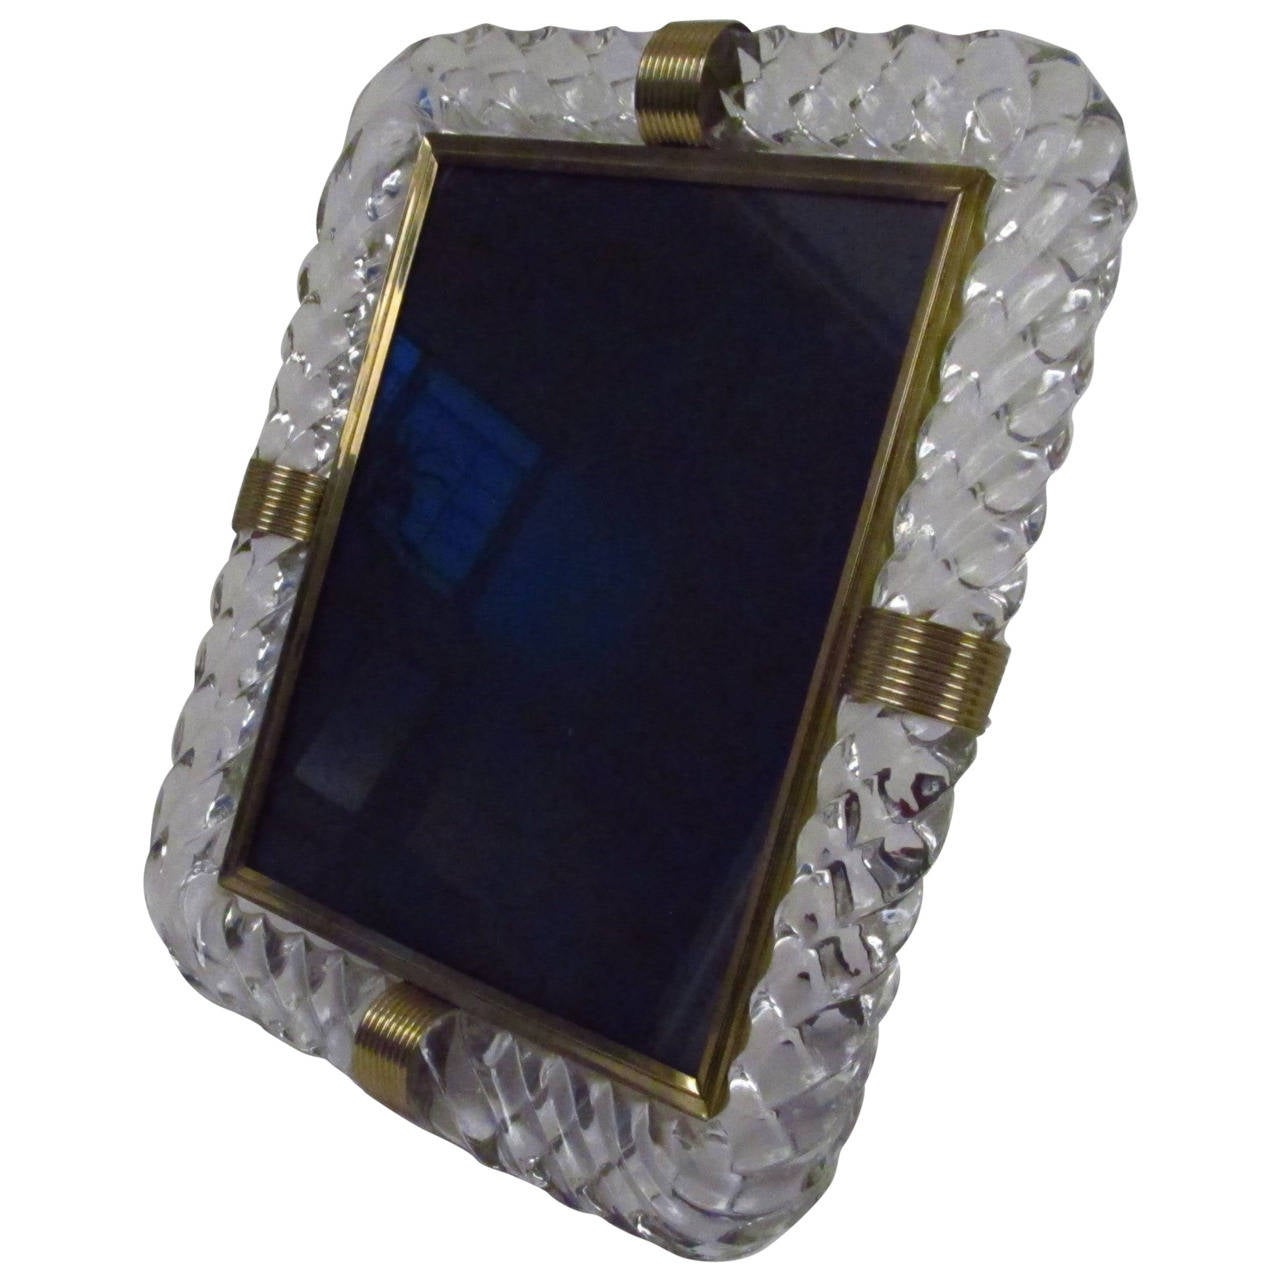 Twisted Rope Glass Picture Frame in the Manner of Venini 1